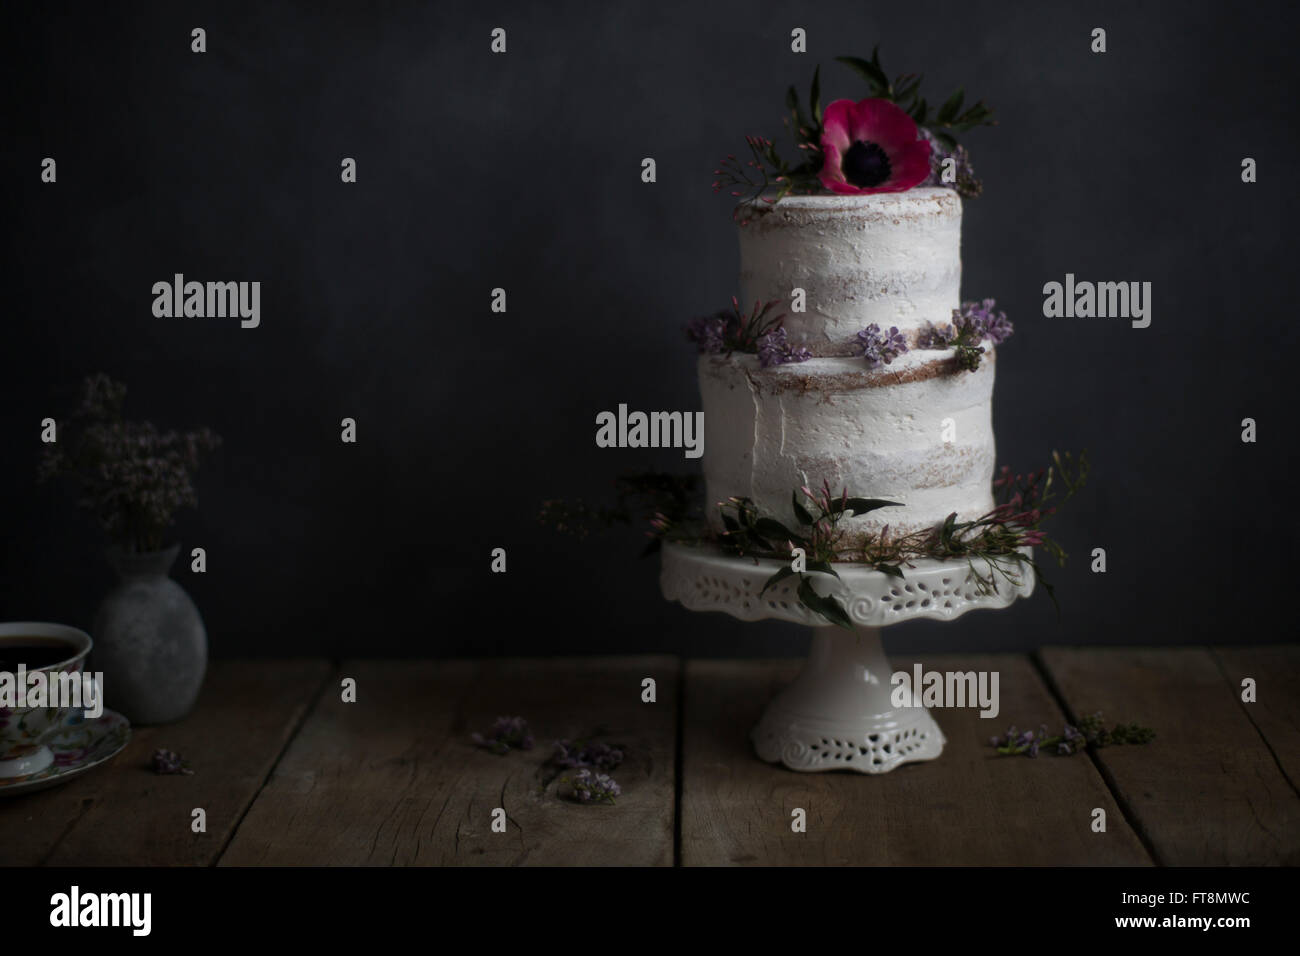 Homemade cake, flower decorated, on a stand. Dark background. - Stock Image